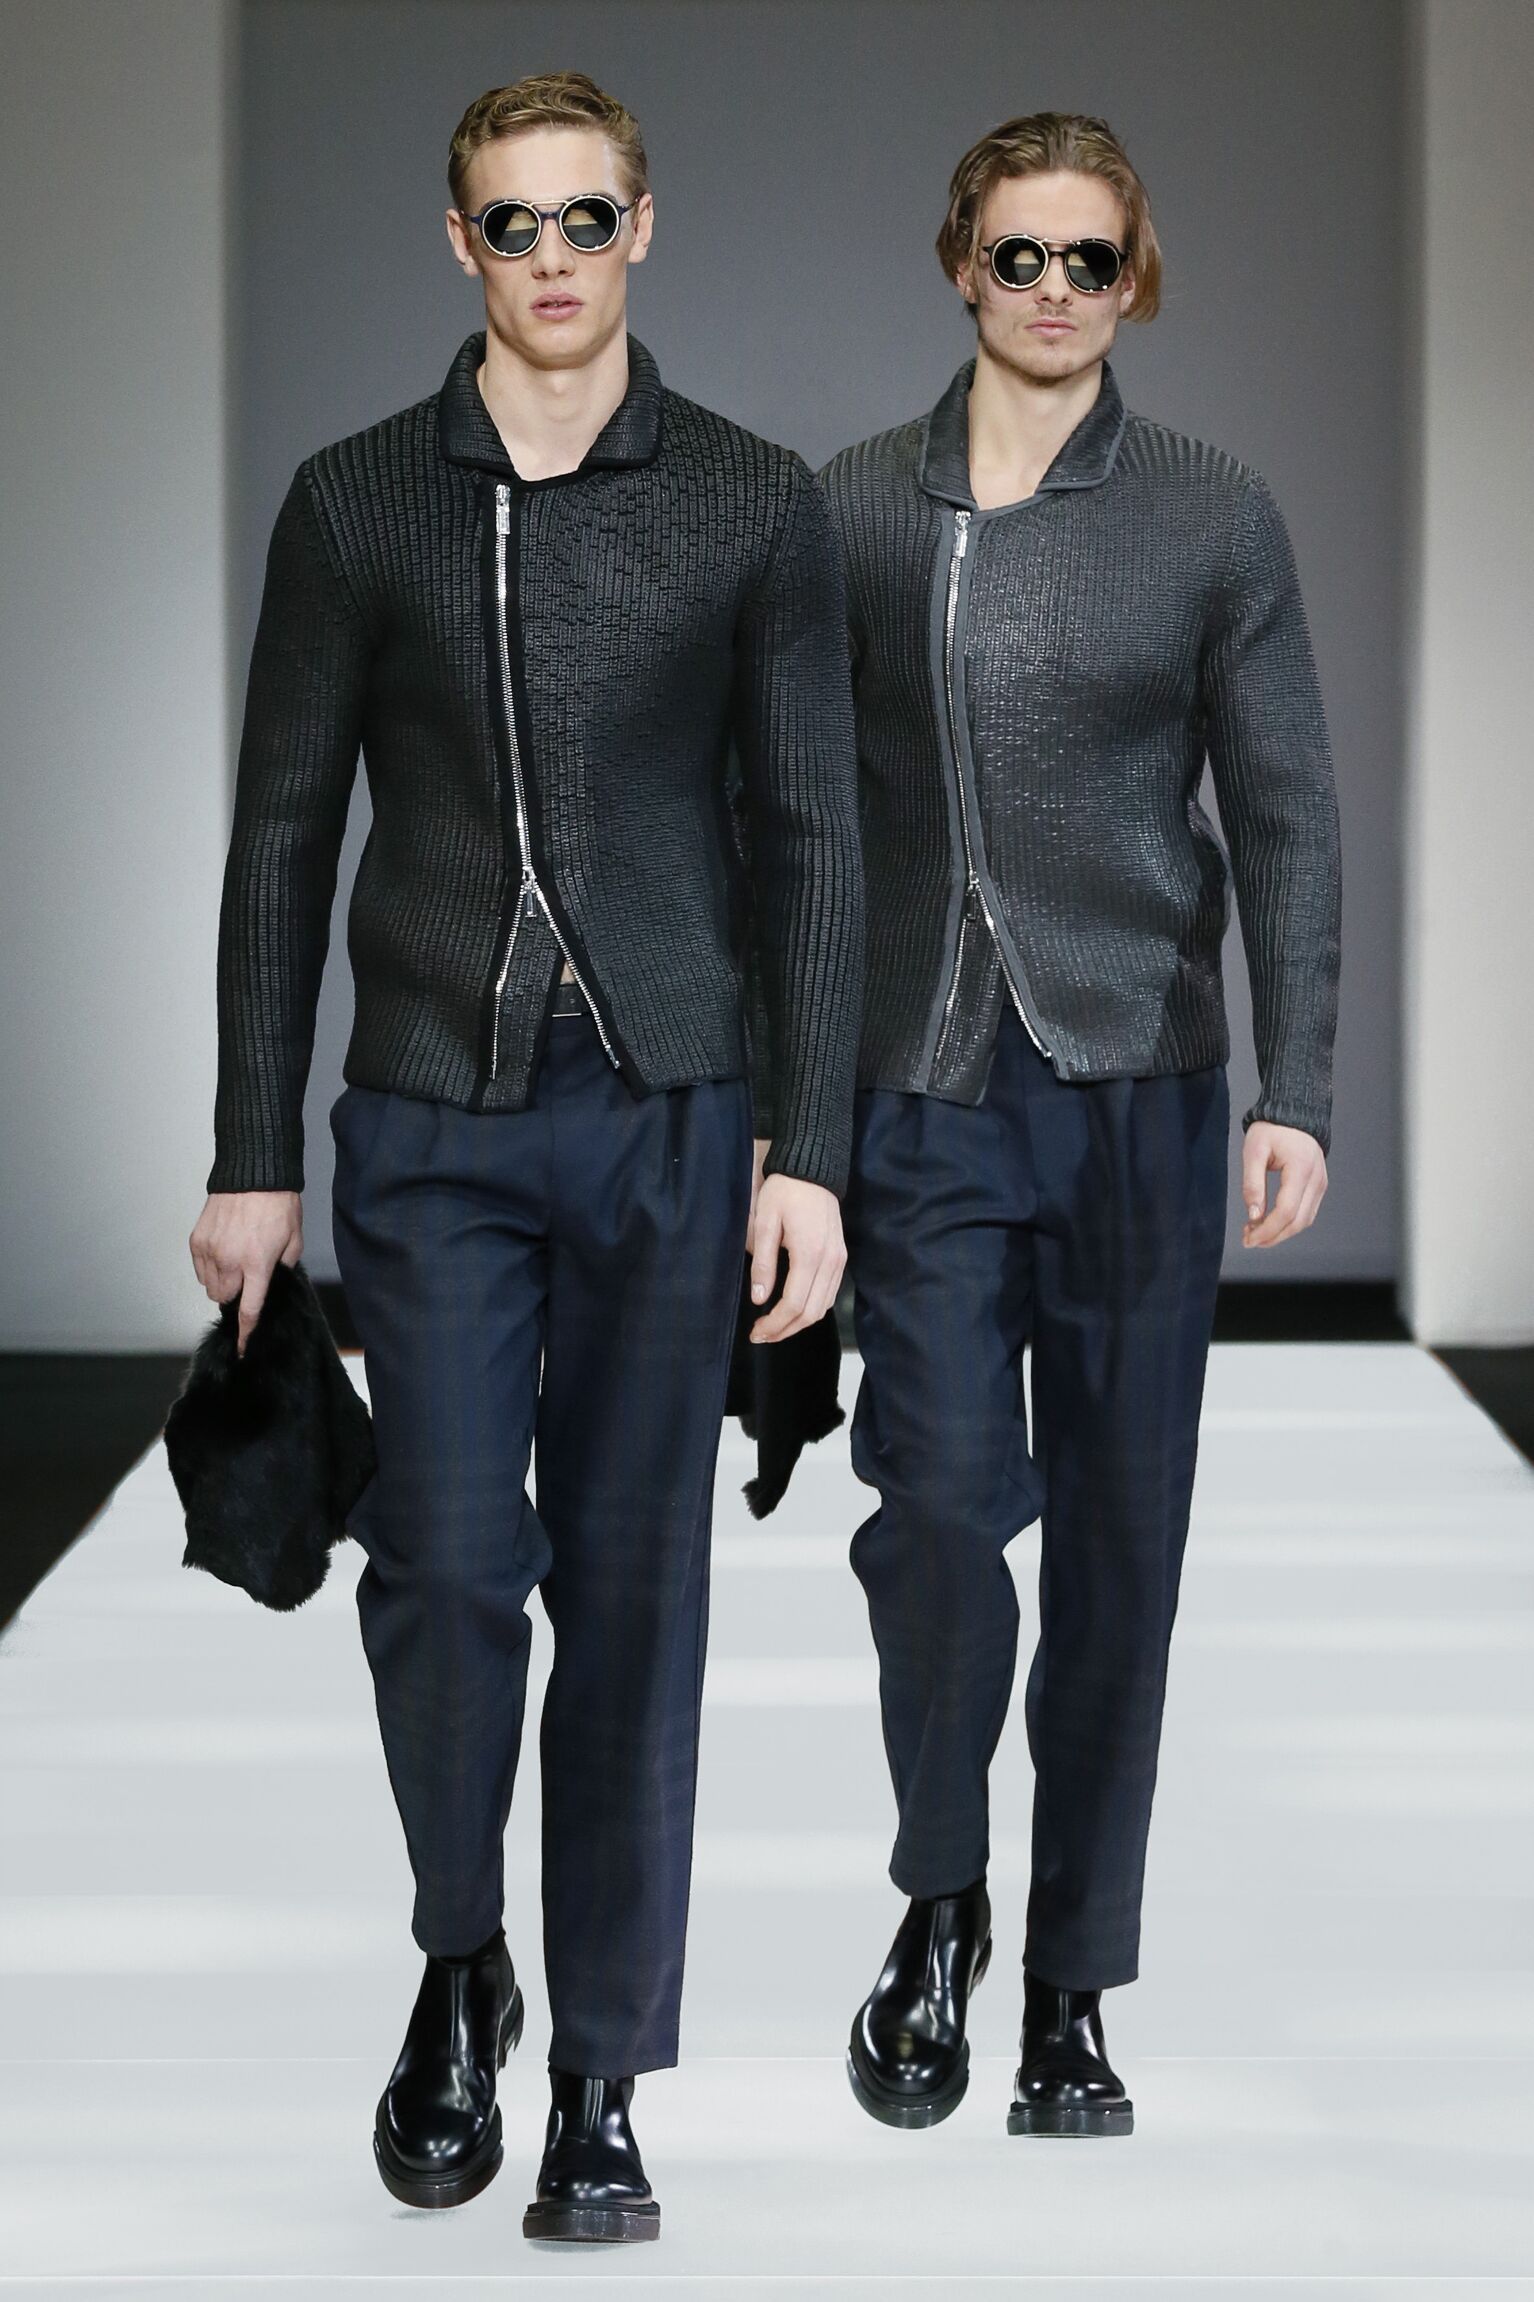 Fashion Winter Trends 2015 2016 Emporio Armani